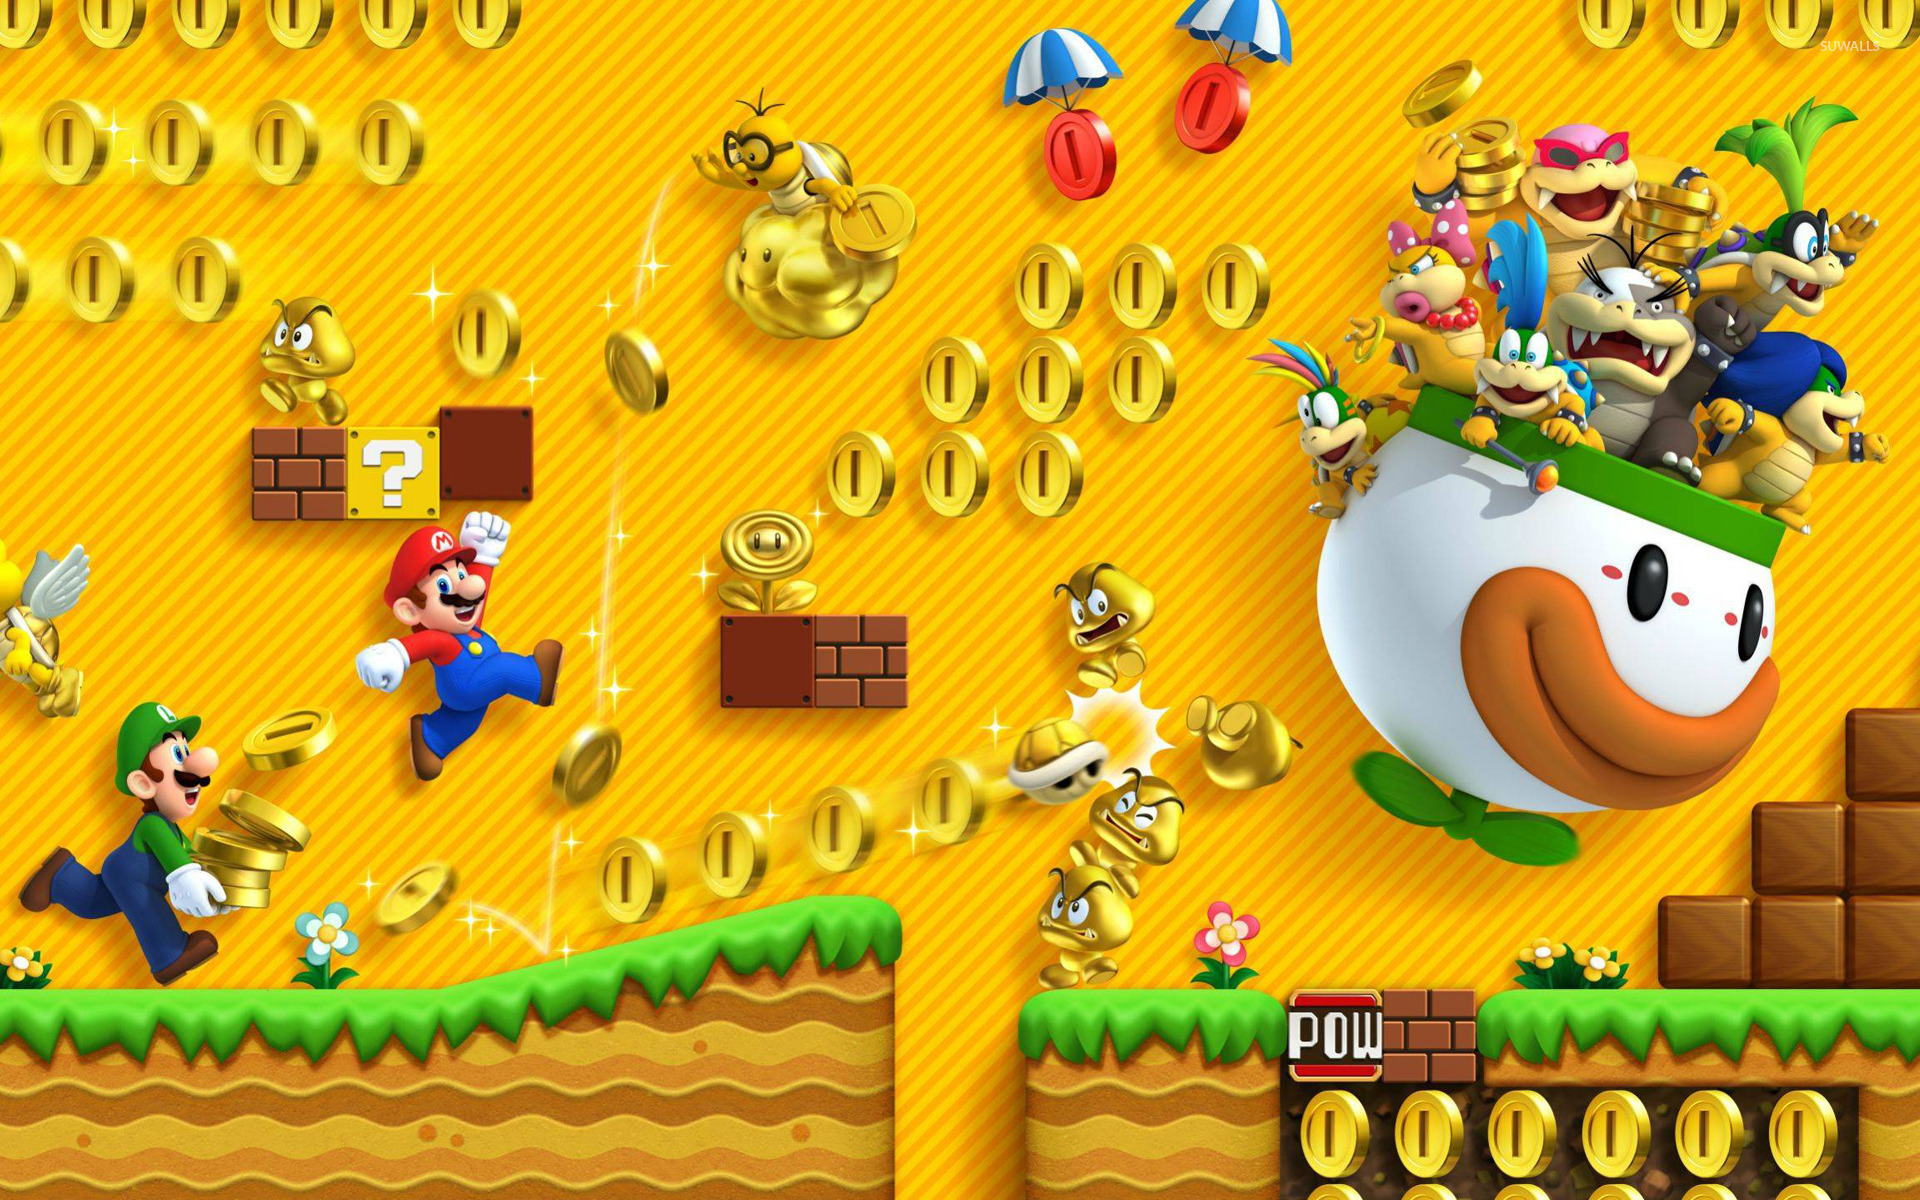 super mario bros 2 wallpaper game wallpapers 14849. Black Bedroom Furniture Sets. Home Design Ideas